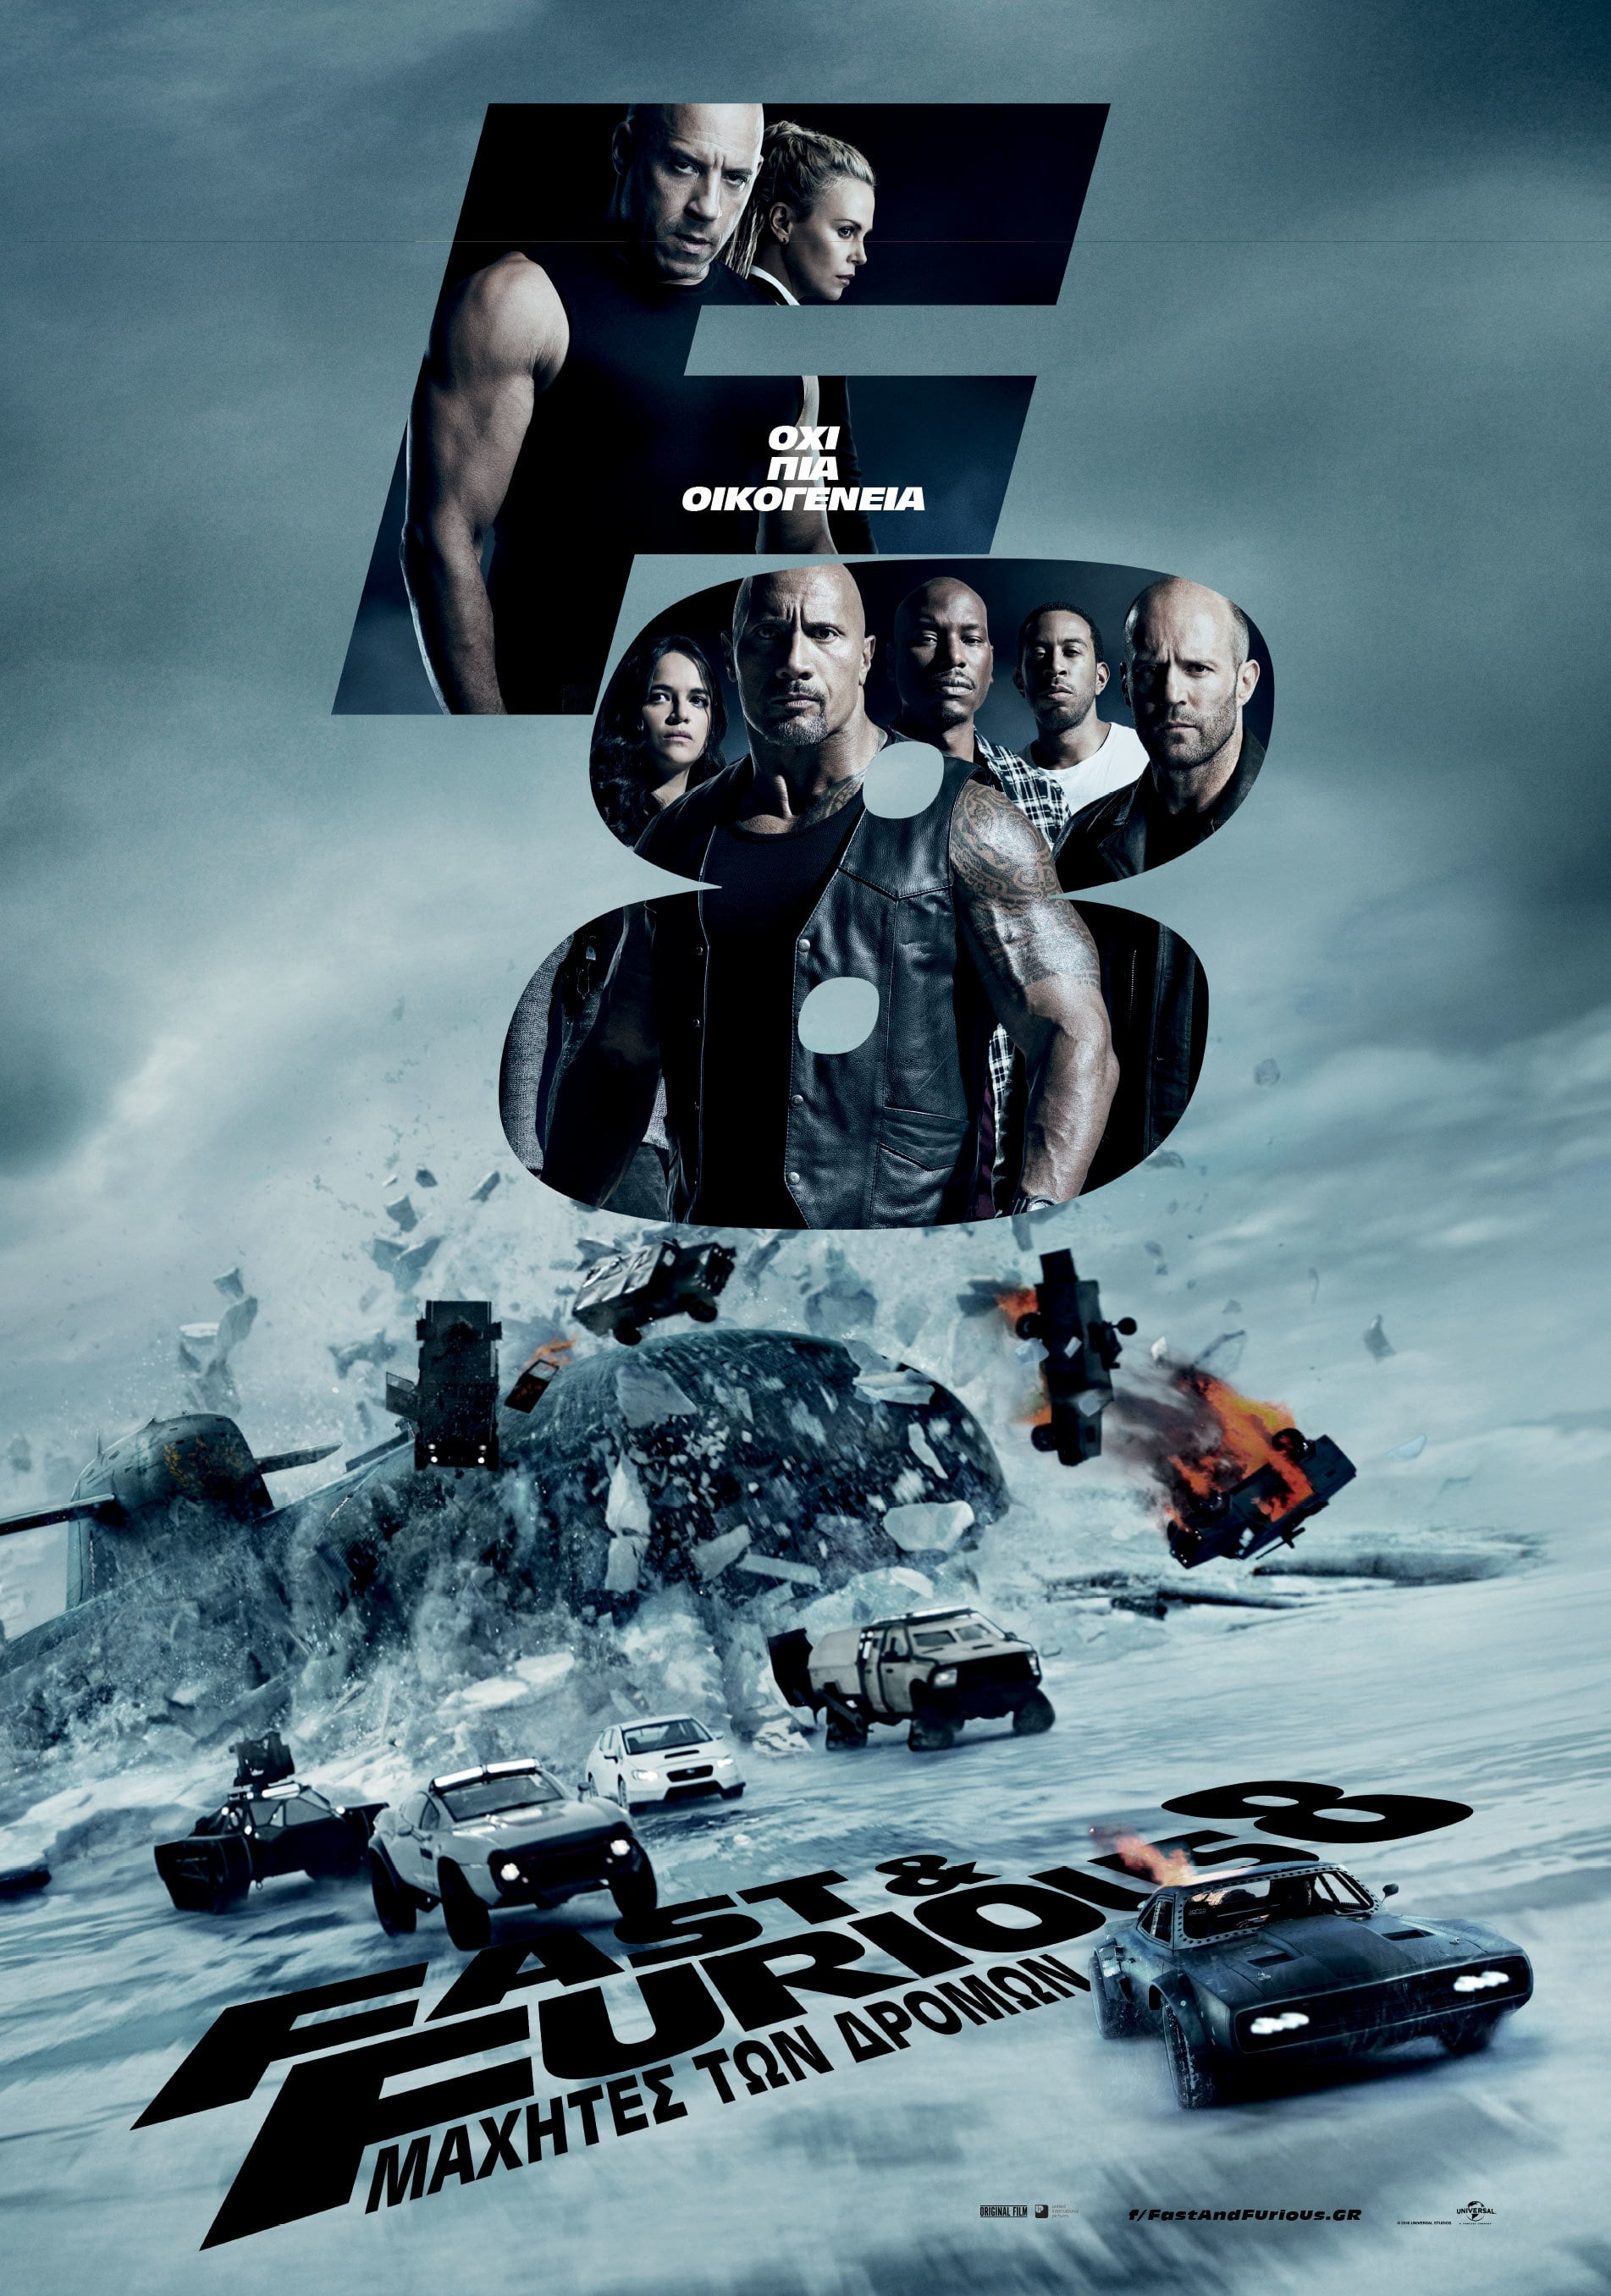 Poster and image movie Film Furios si Iute 8 - Furios și iute 8 - The Fate of the Furious - The Fate of the Furious -  2017